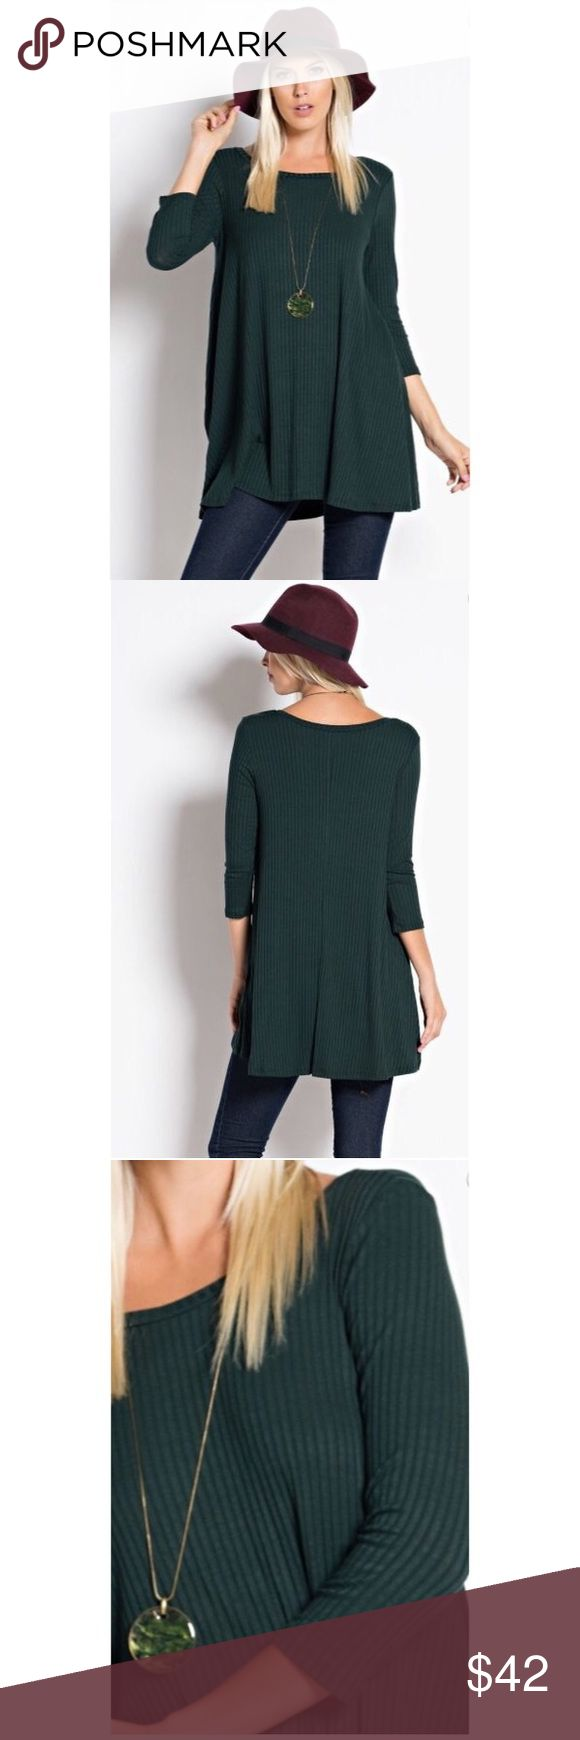 Robbed Tunic Top Adorable Heather Green Tunic Top. perfect for fall. Pair it with leggings and boots! Fabric: 95% Rayon, 5% Lycra Love In Tops Tunics